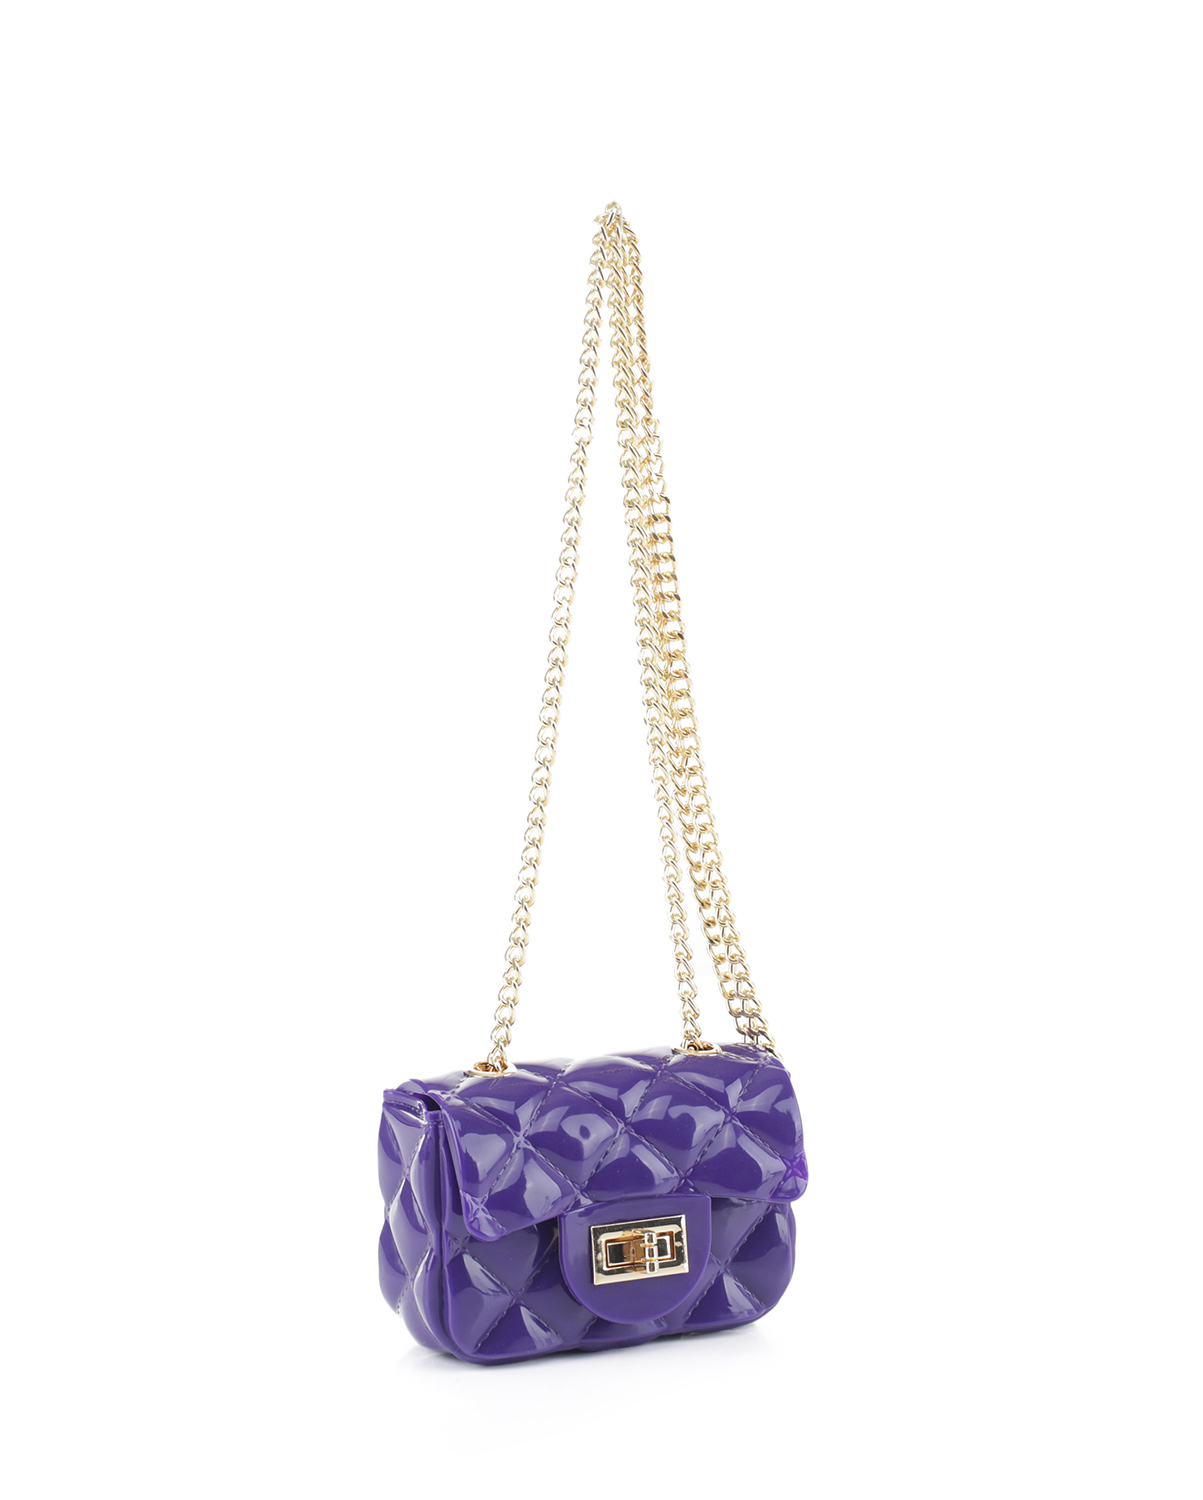 JB3133(PP)-wholesale-messenger-bag-jelly-silicorn-solid-color-flap-chevron-gold-chain-convertible-embossed(0).jpg